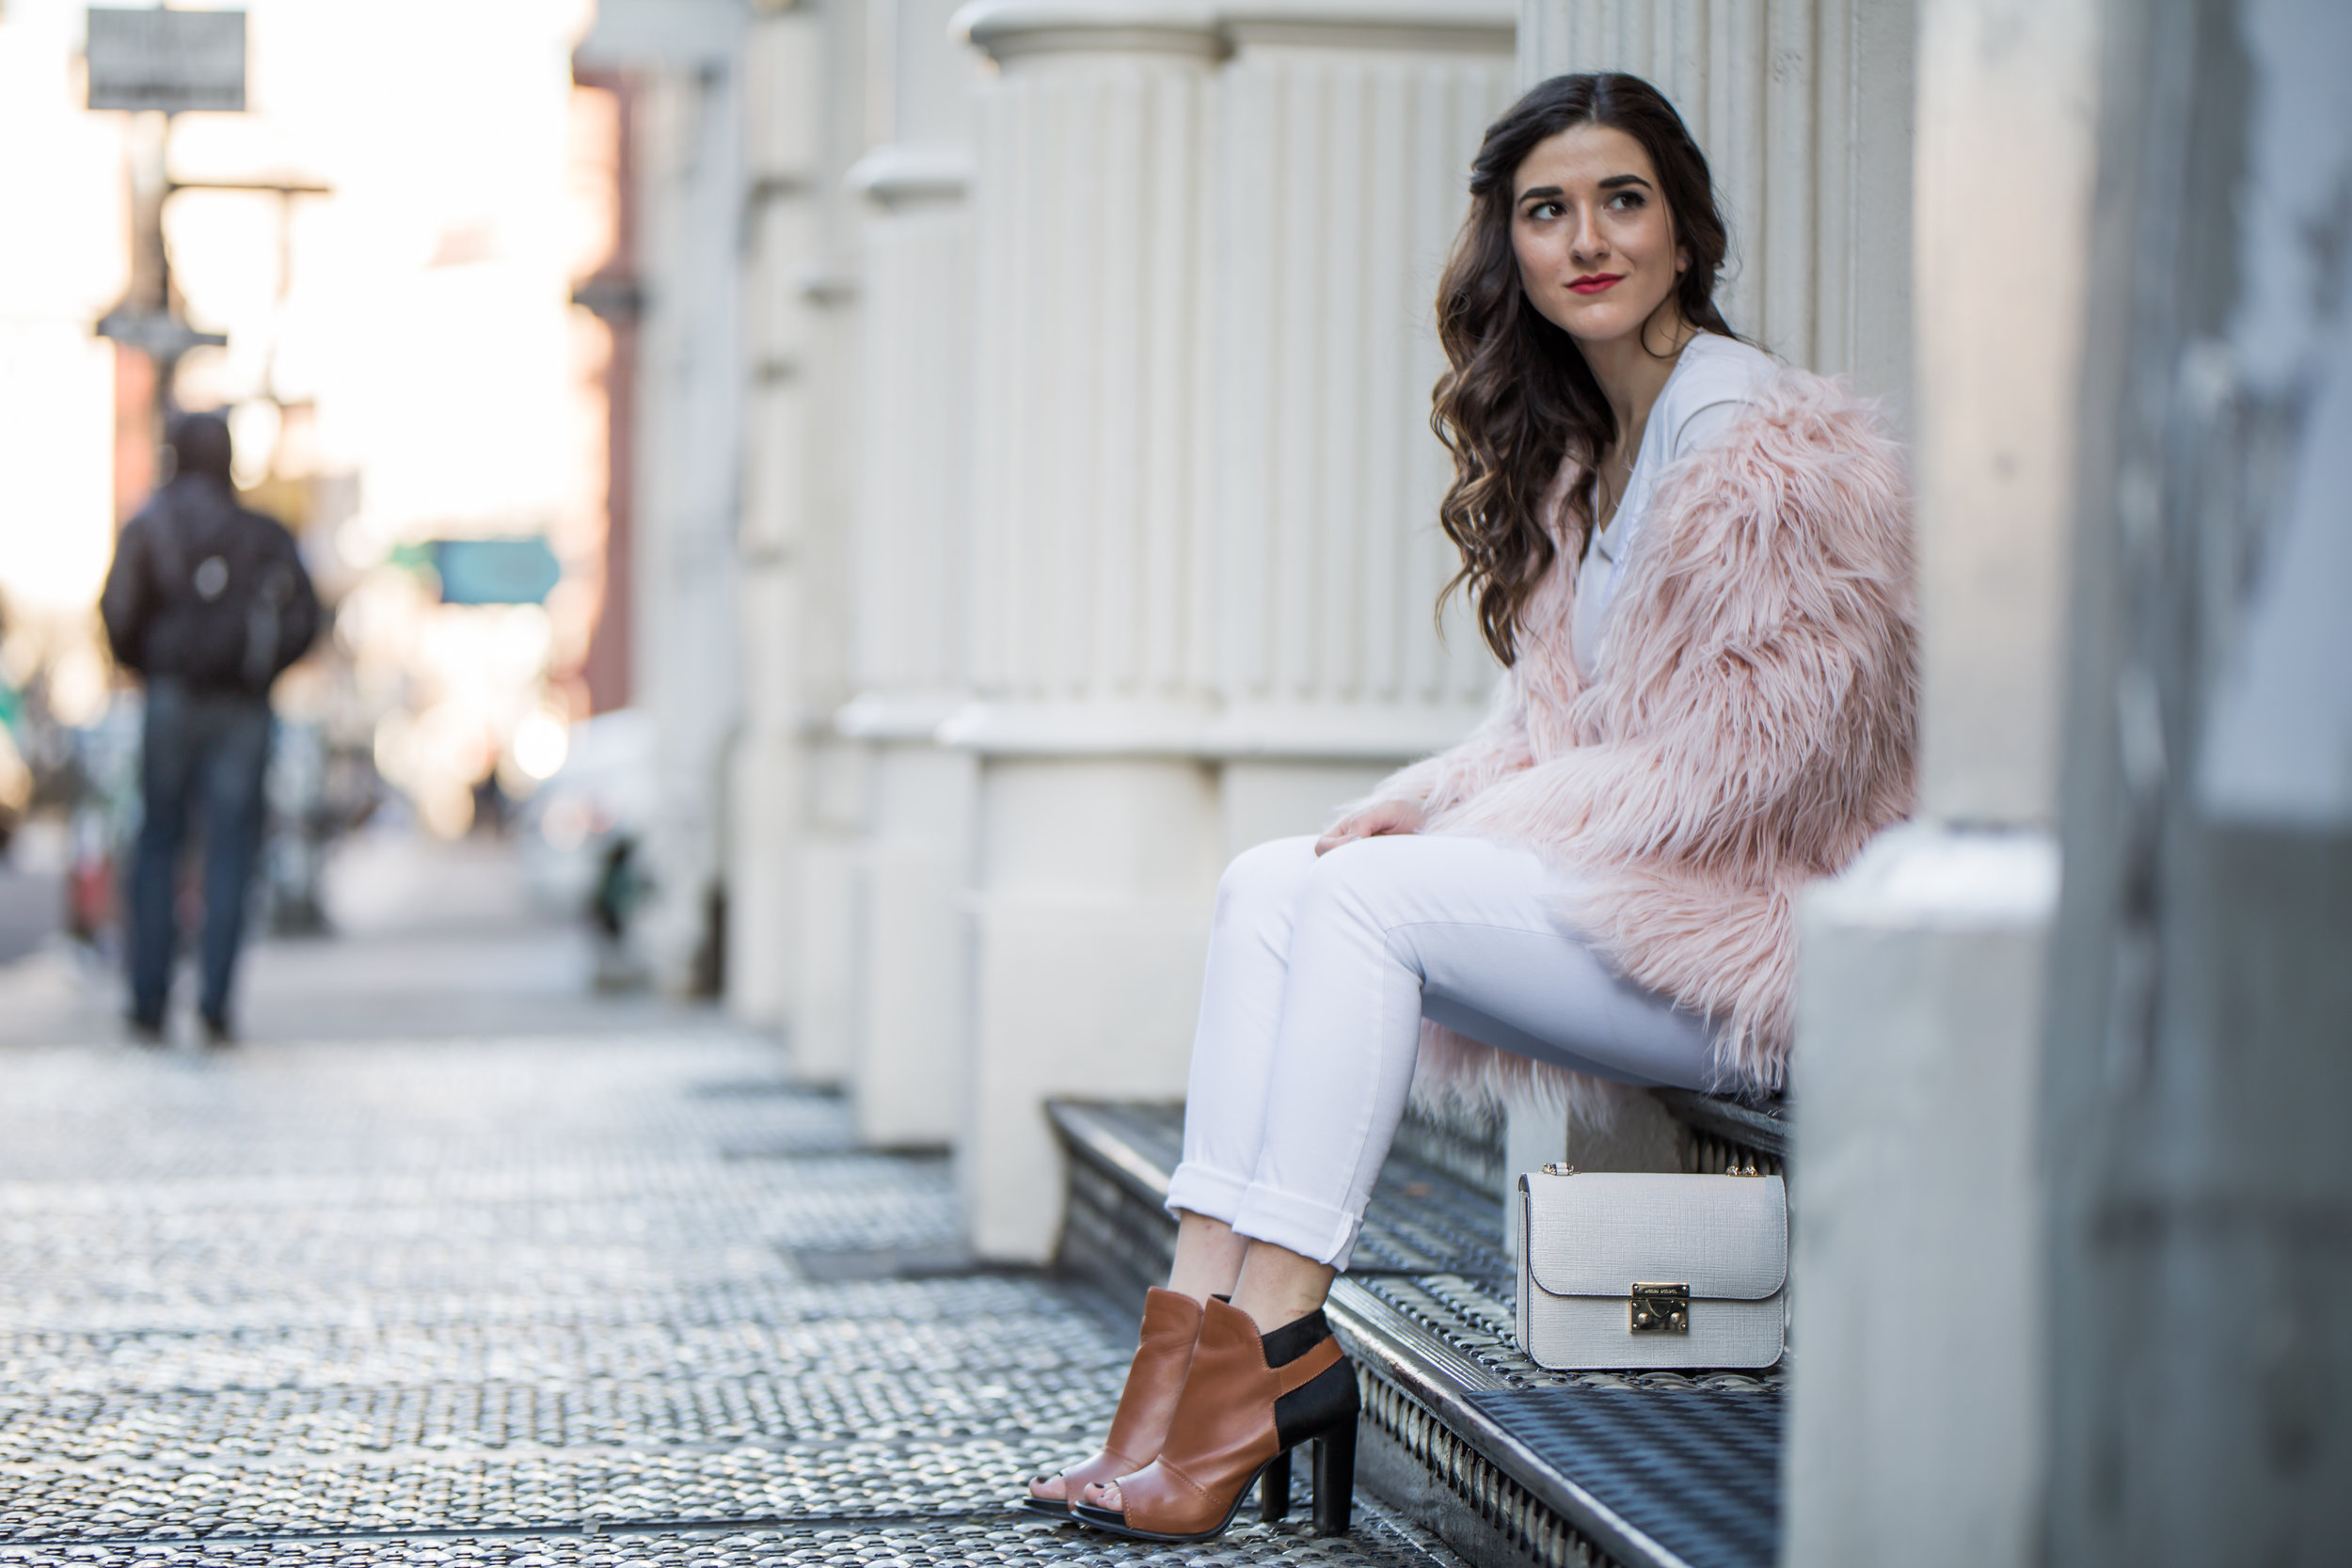 Pink Faux Fur Jacket White Jeans The Best Career Advice Esther Santer Fashion Blog NYC Street Style Blogger Outfit OOTD Trendy Winter Whites Henri Bendel Bag Tan Booties Girl Women Shop Sale Hair Model Shoes What To Wear Wearing Accessories Photoshoot.jpg